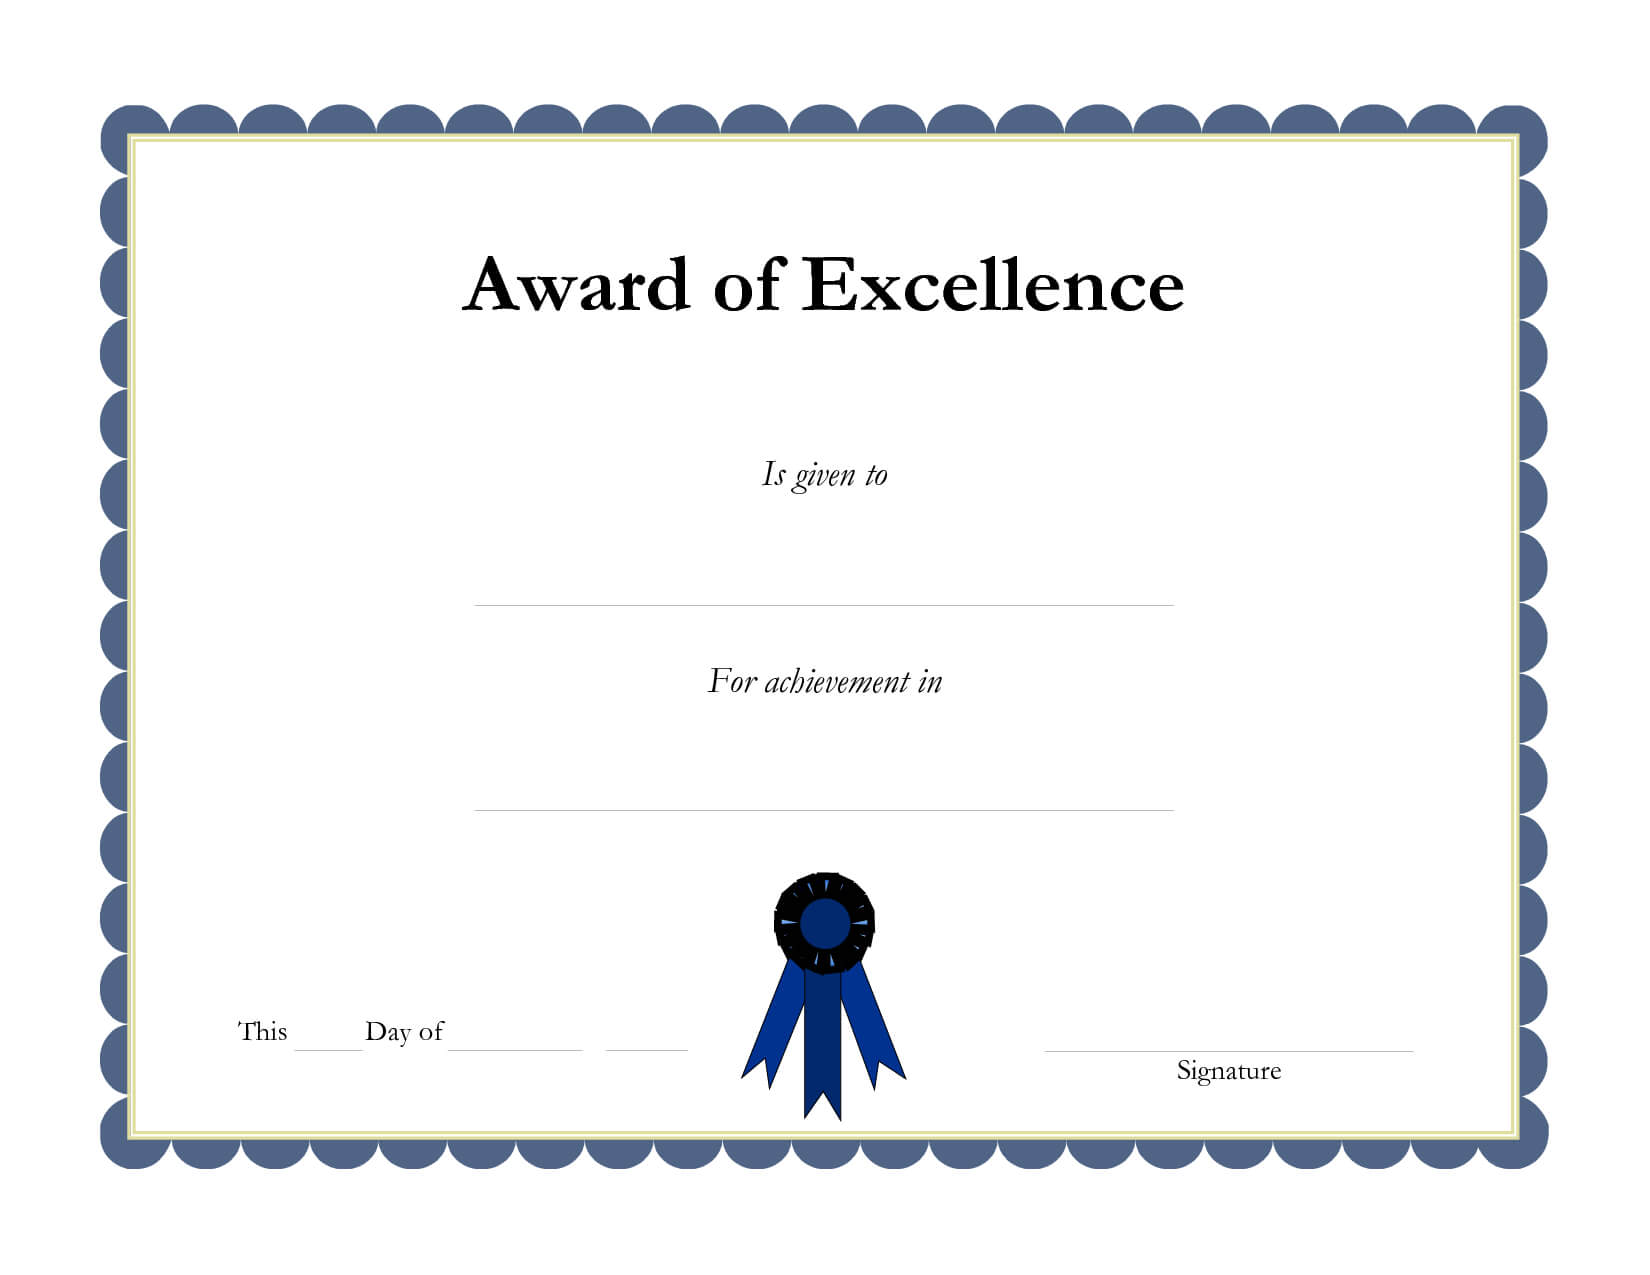 Award Template Certificate Borders | Award Of Excellenceis For Award Certificate Border Template